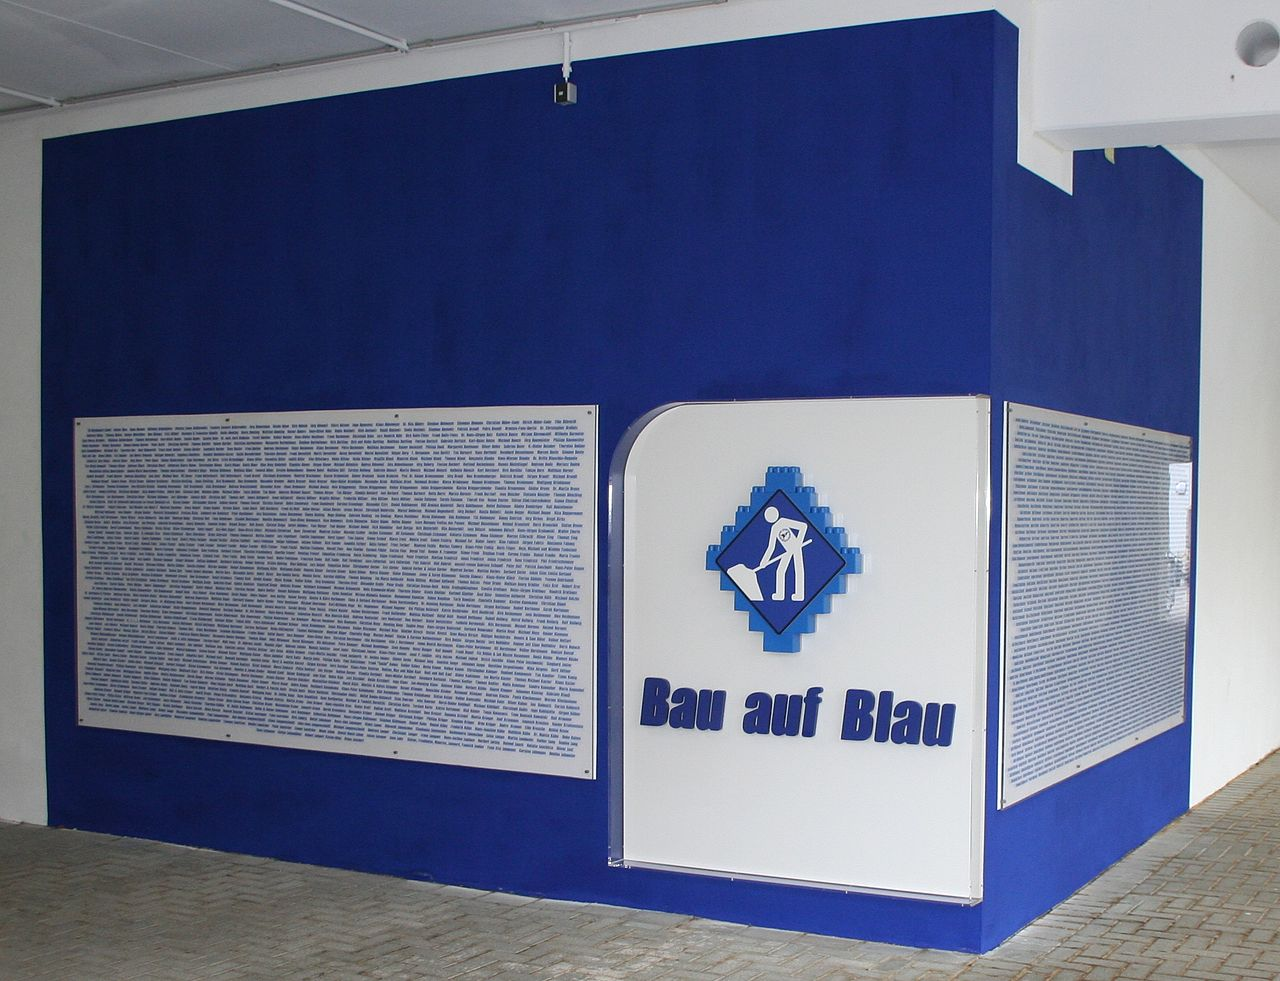 File:Blaue Wand.JPG - Wikimedia Commons